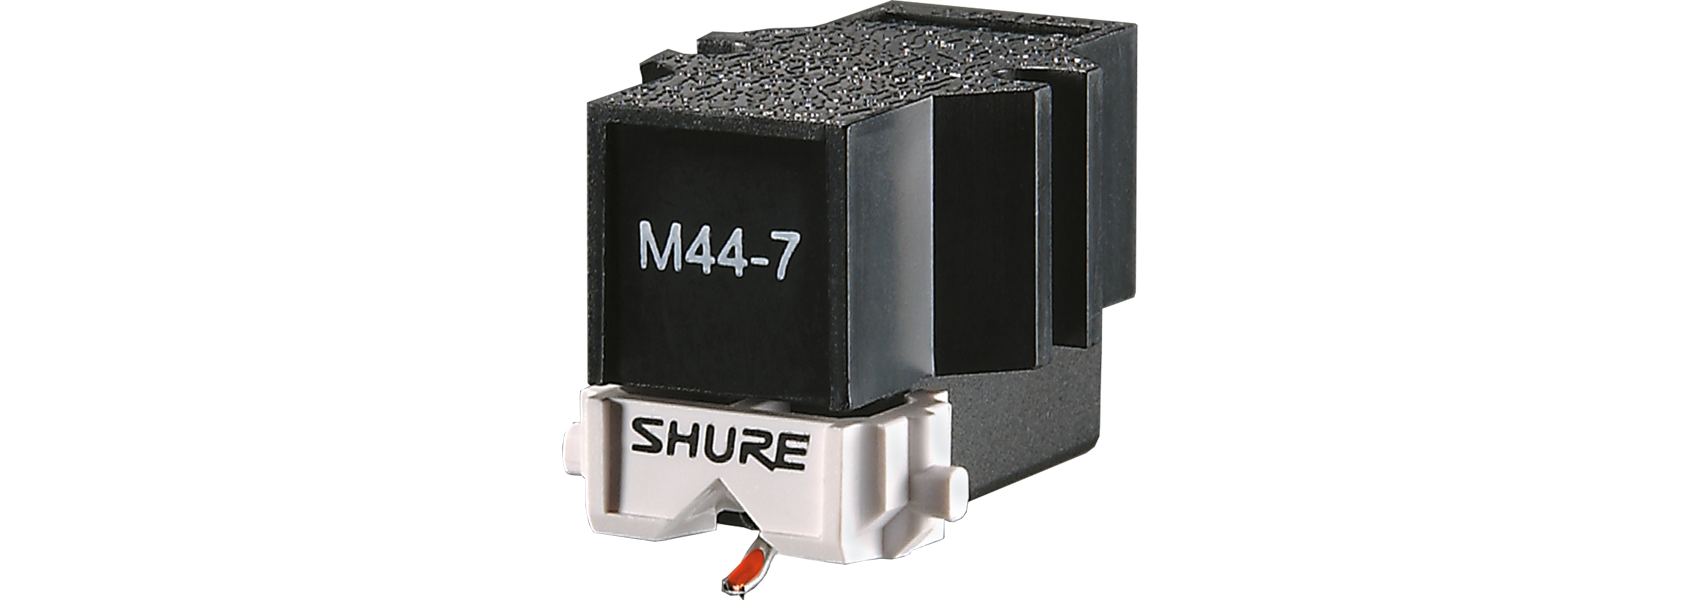 Illustration Shure M44-7 Phonograph Cartridge